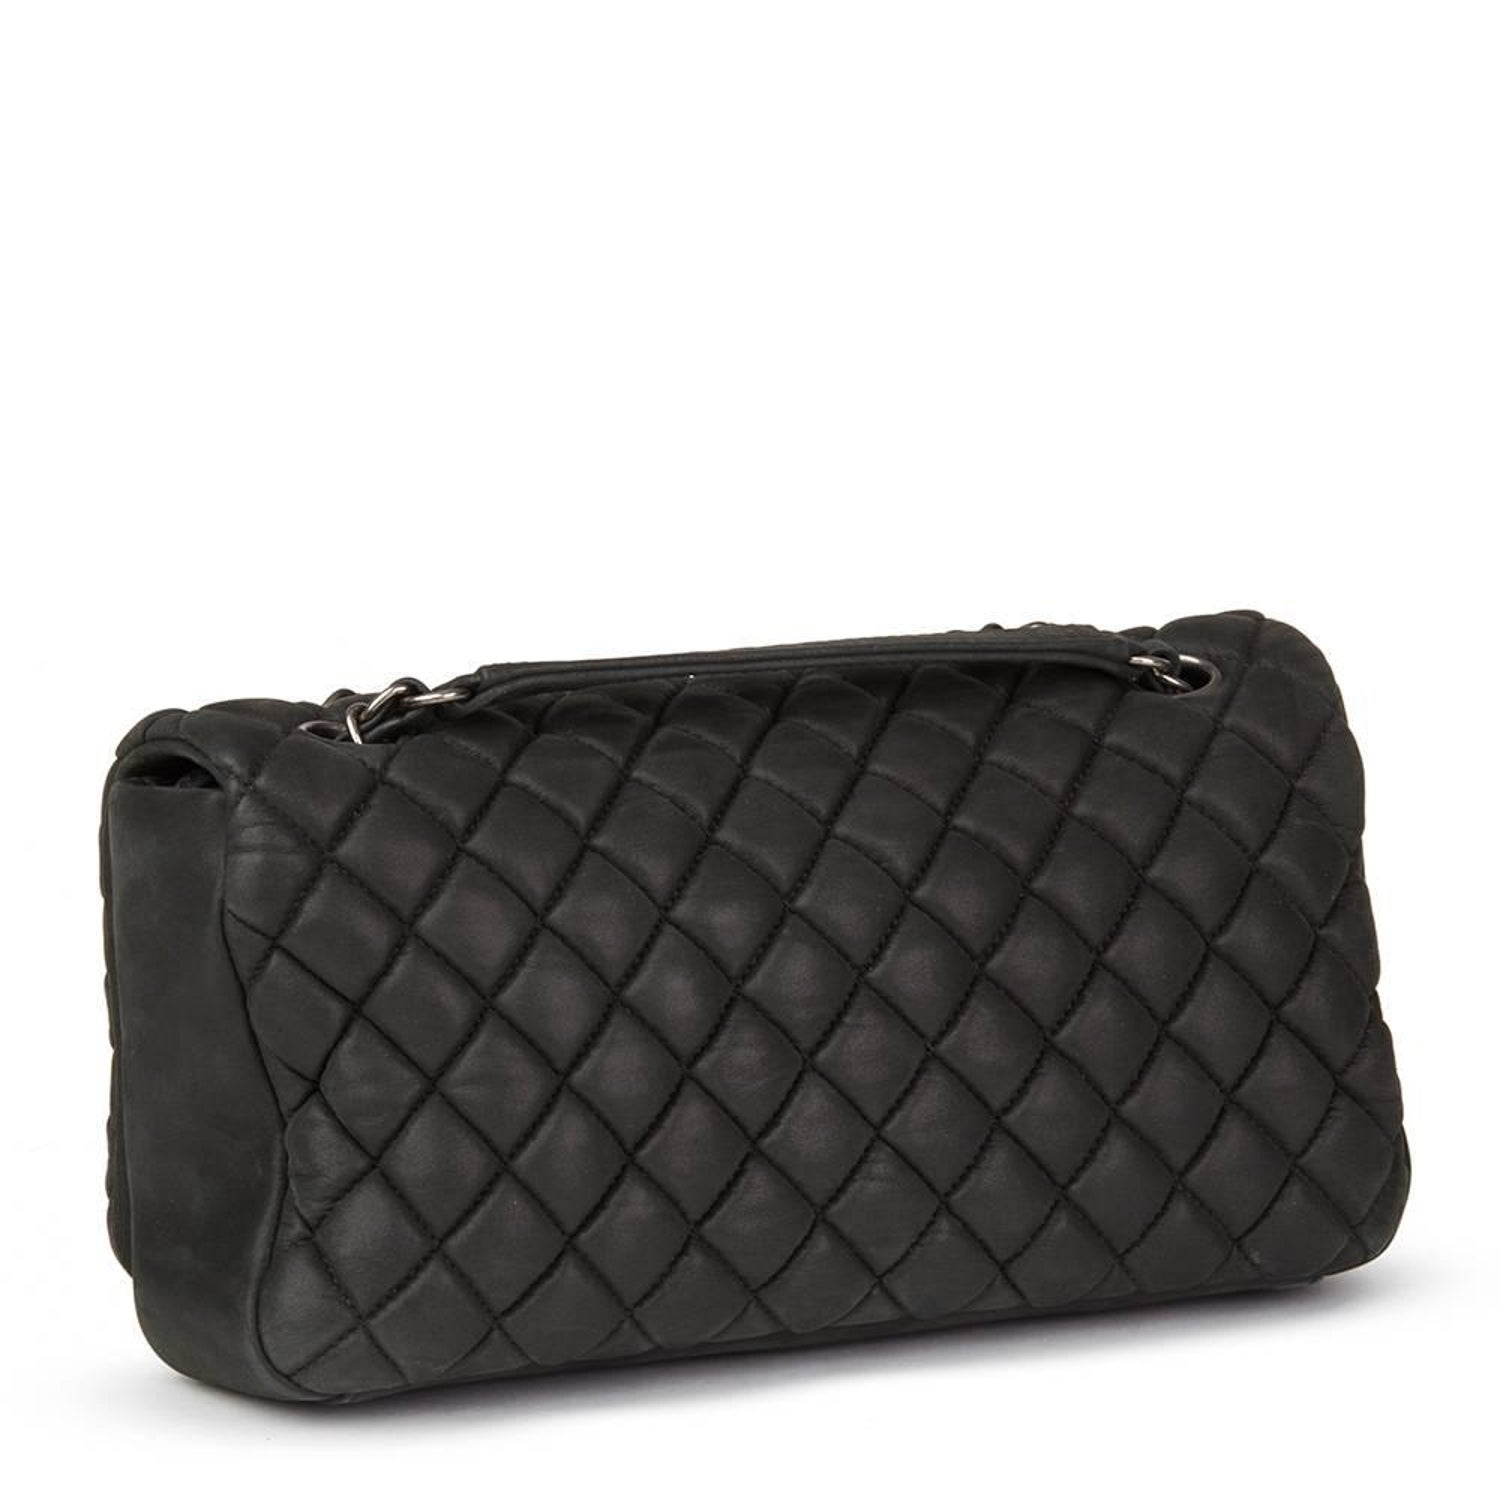 f5438de68fcf 2013 Chanel Dark Grey Bubble Quilted Velvet Calfskin Small Bubble Flap Bag  at 1stdibs